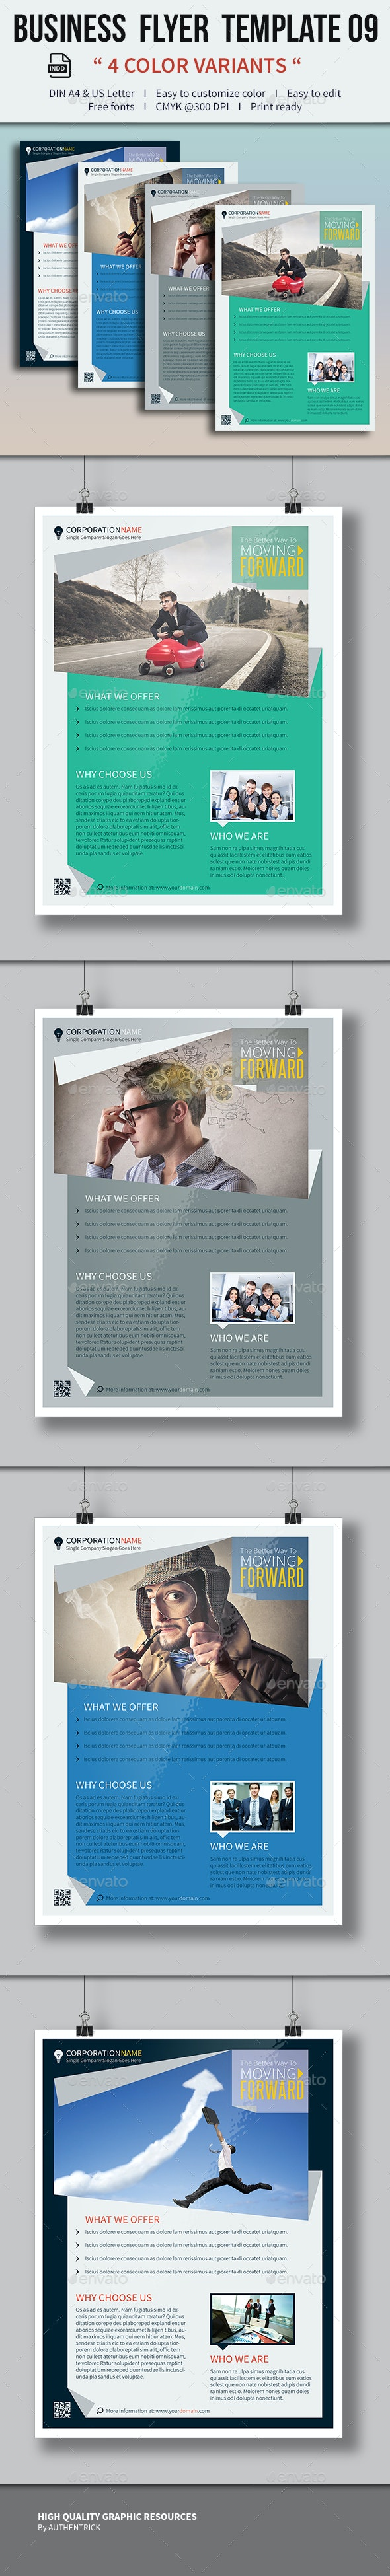 Business Flyer Template 09 - Corporate Flyers